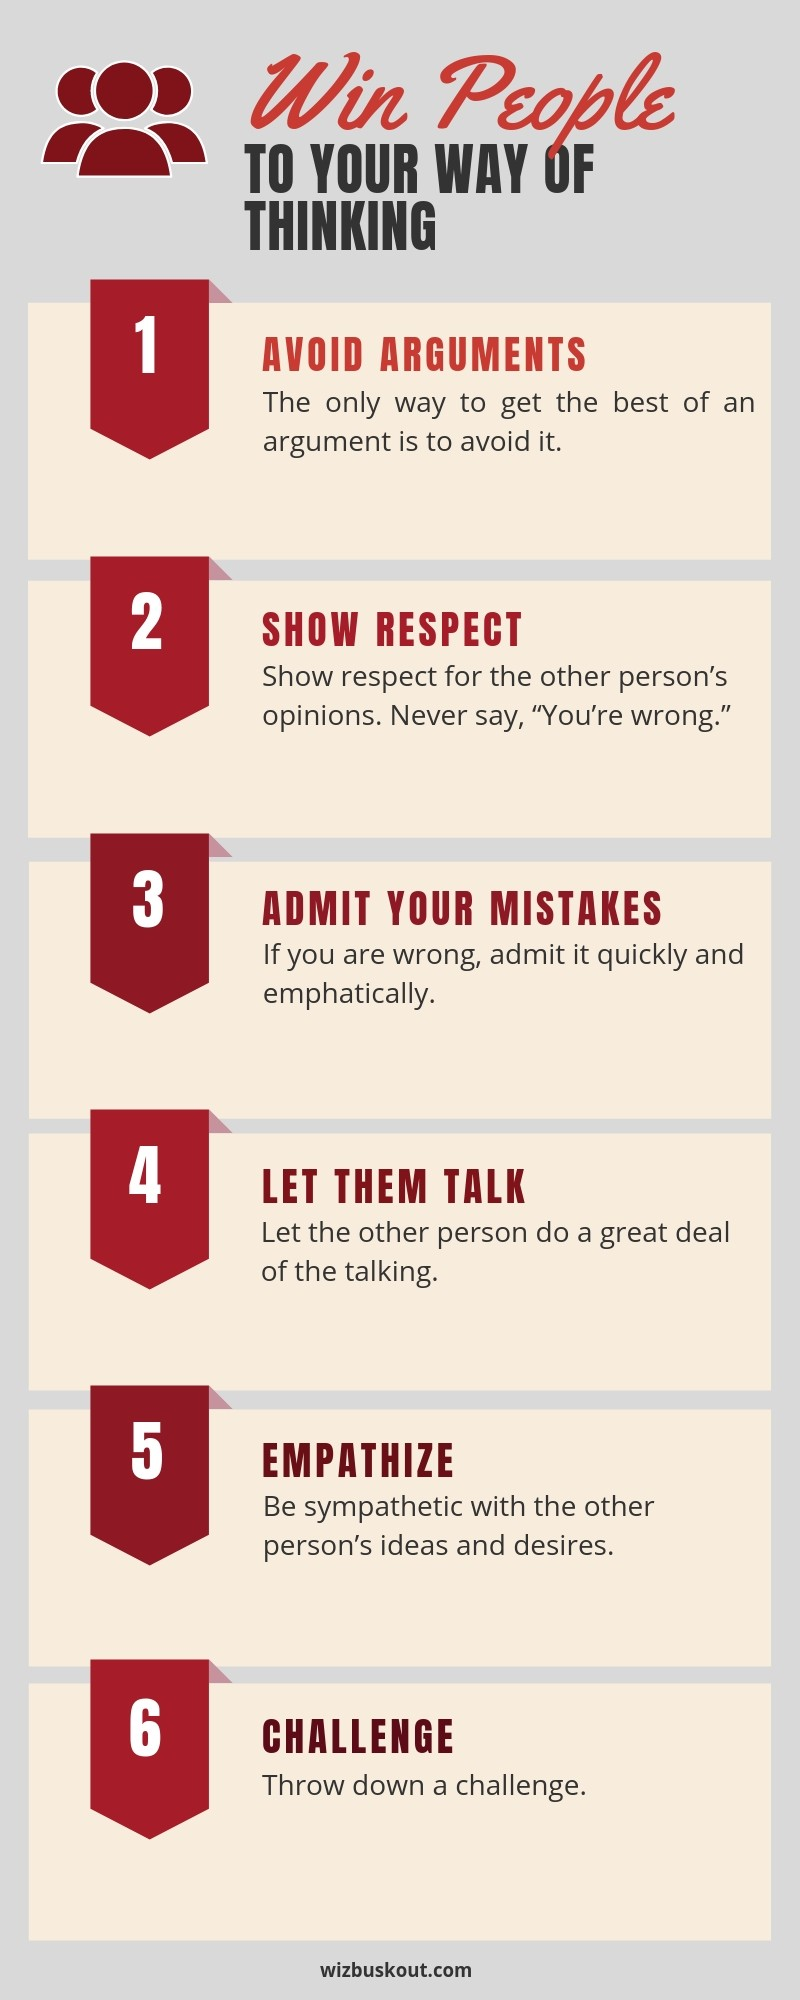 win people to your way of thinking infographic